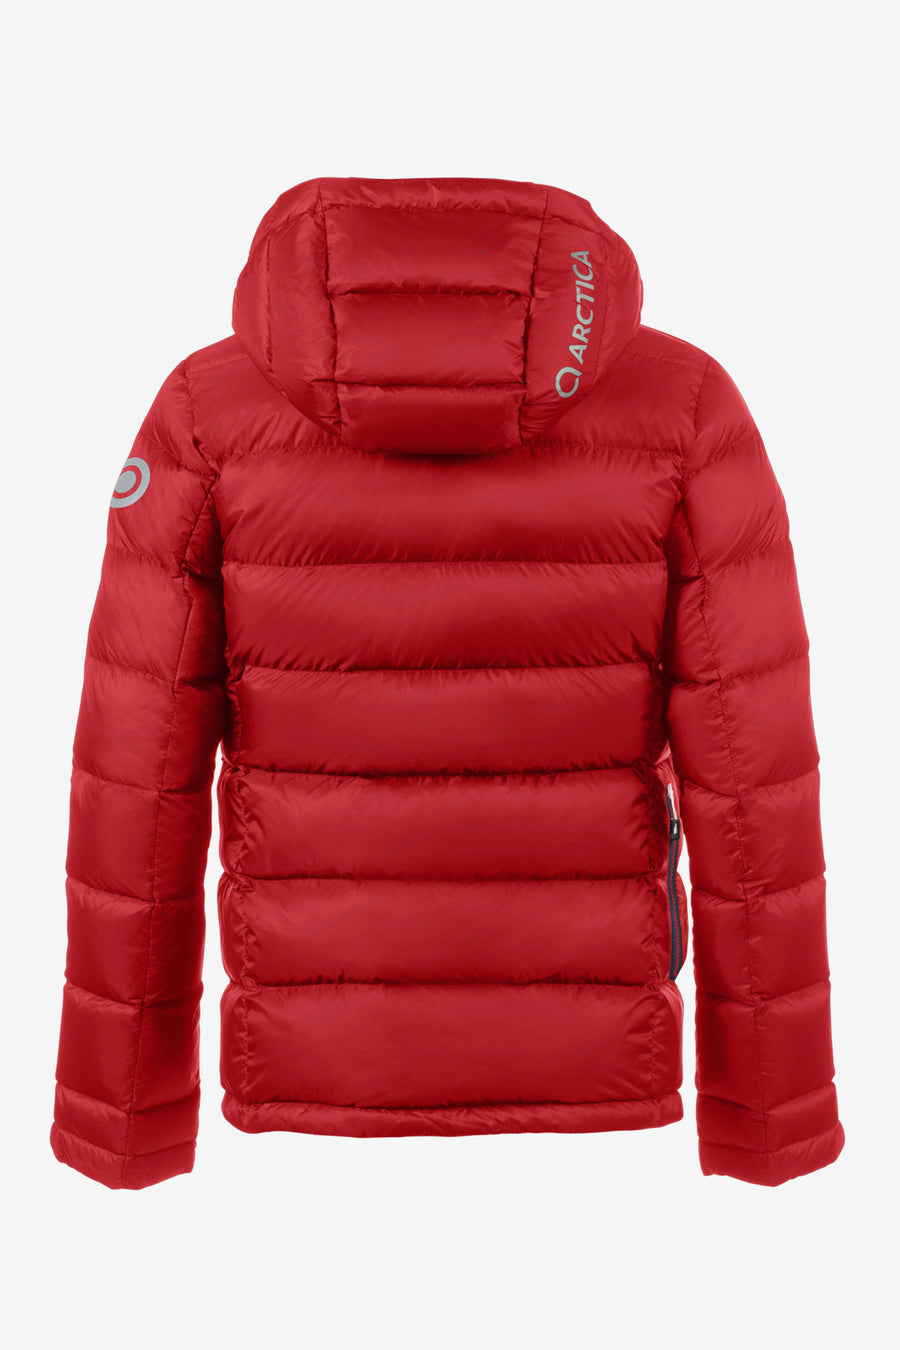 Arctica Classic Down Kids Jacket - Red